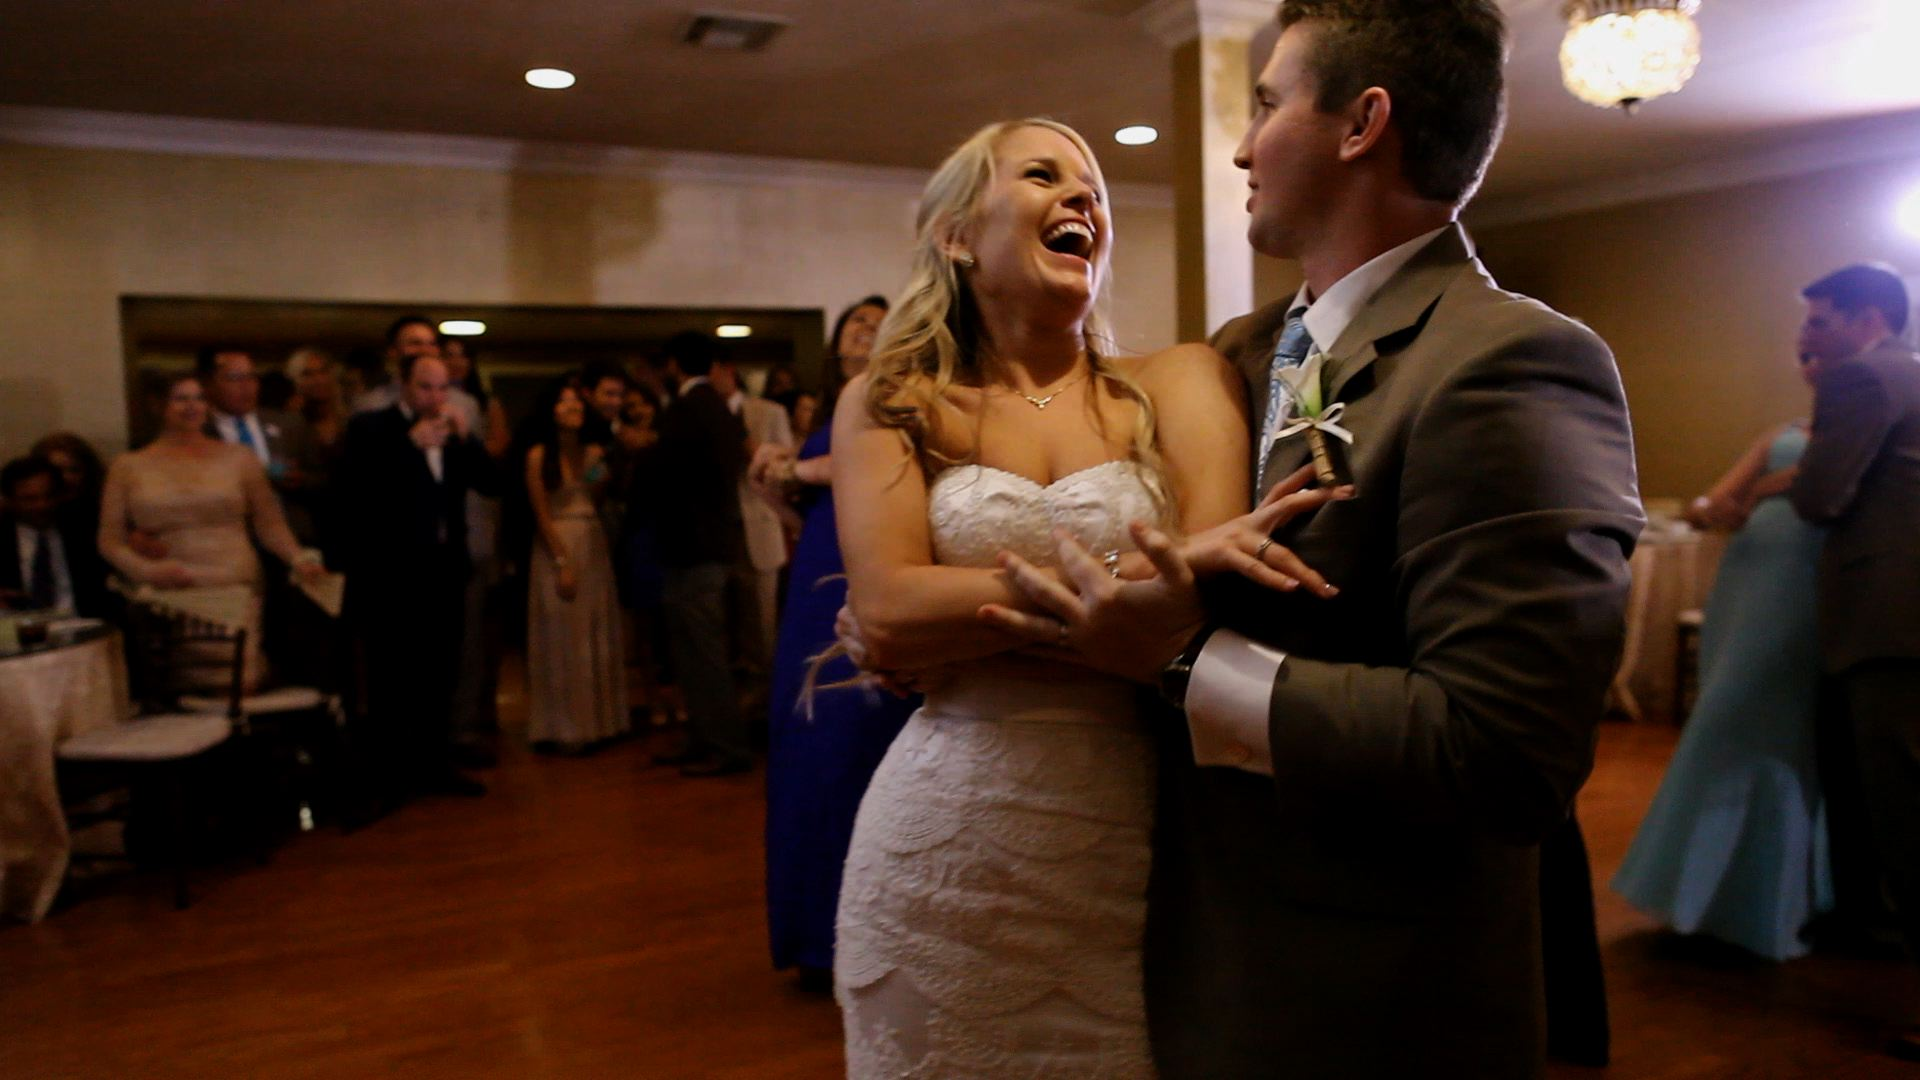 All of the wedding guests enjoyed the performance...